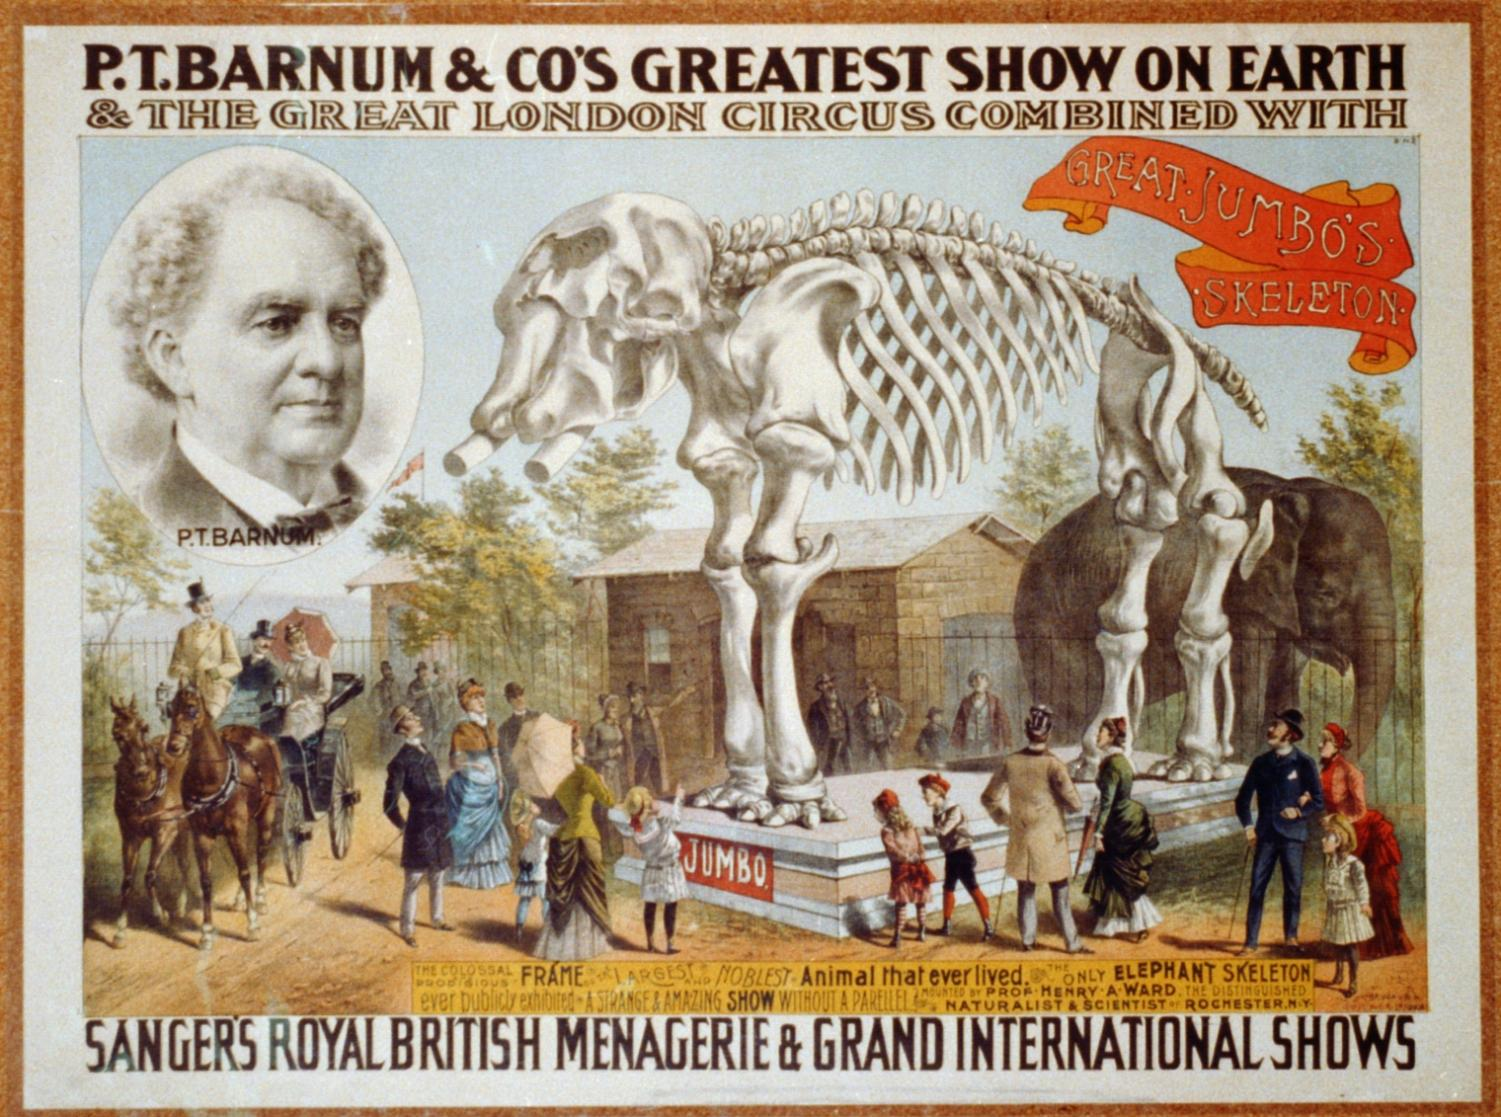 Ad for P.T. Barnum's circus (provided through Wikipedia)